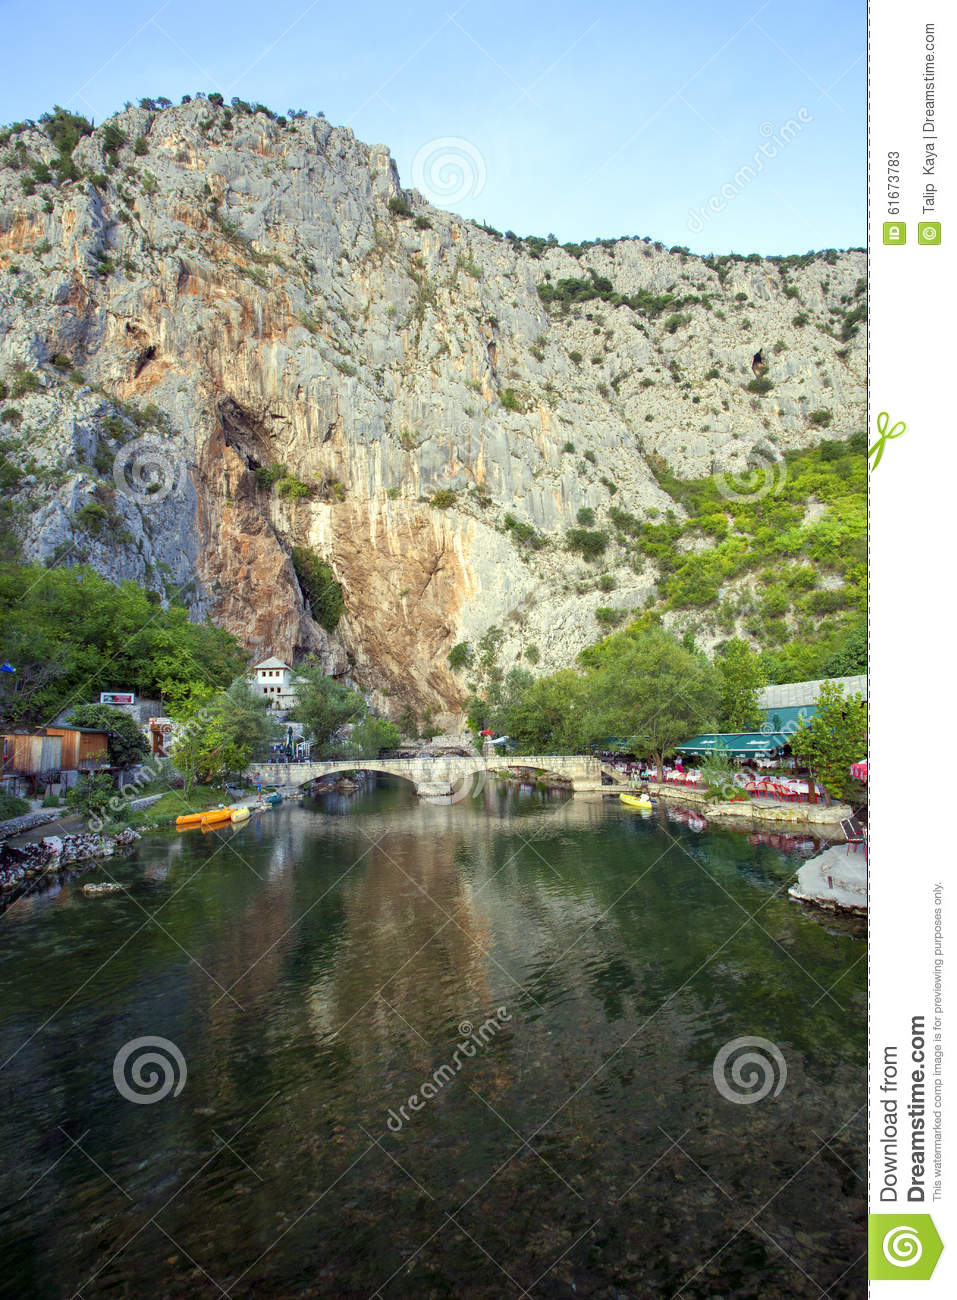 Buna The Largest River Source In Europe Stock Photo.